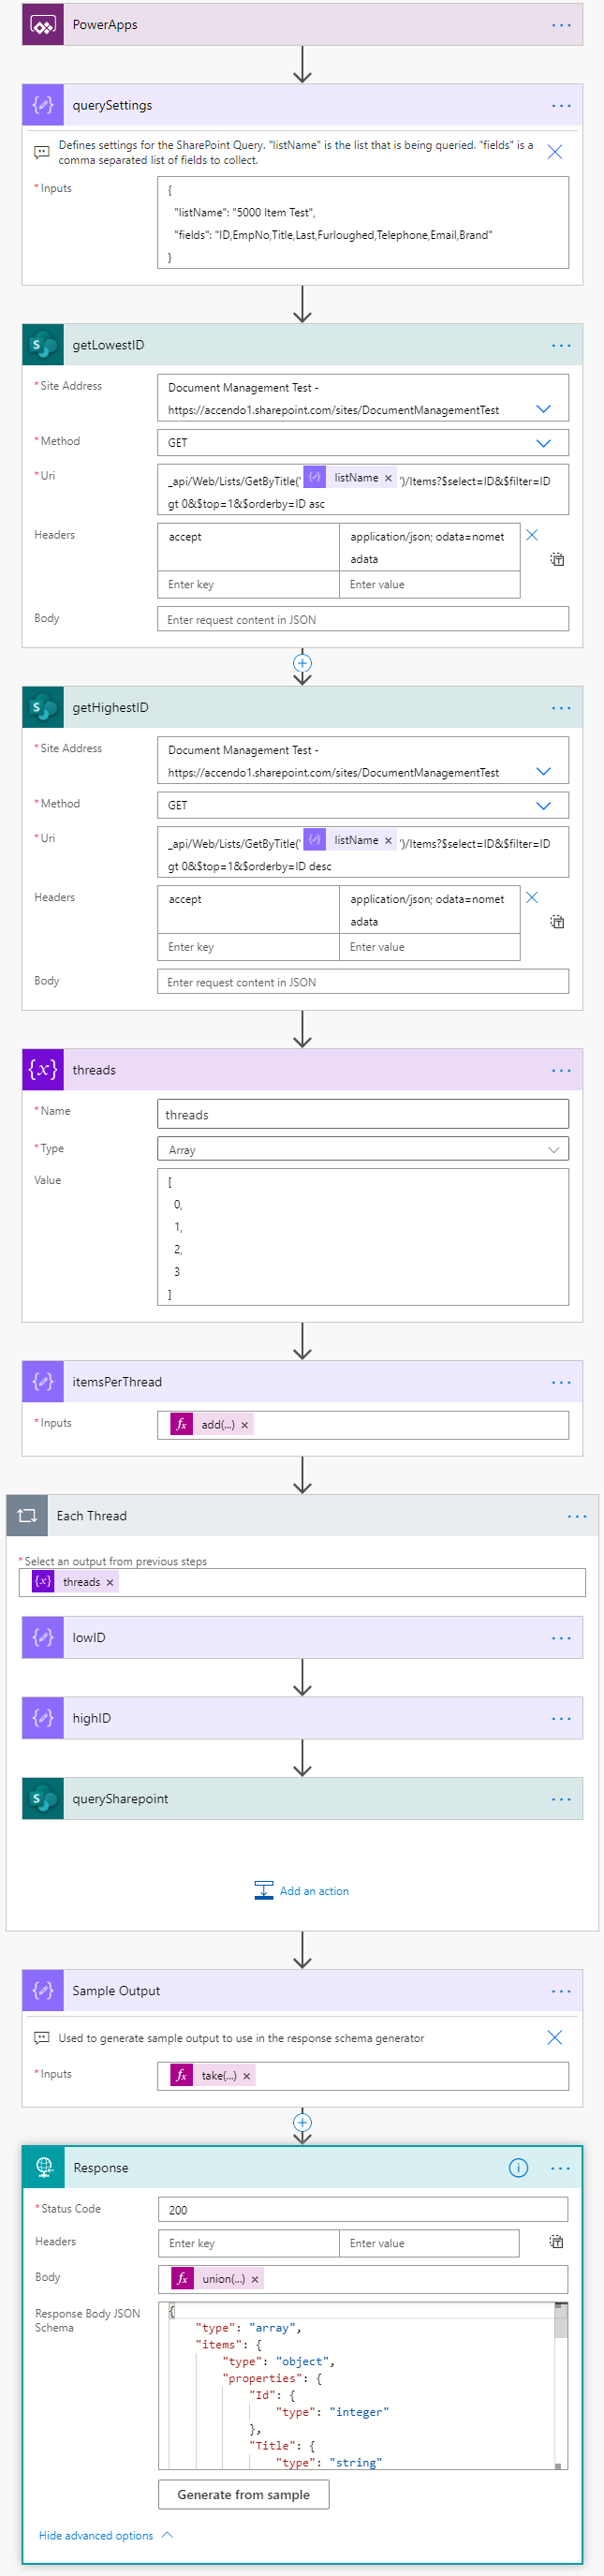 Super easy flow to get more than 5,000 items from a SharePoint list